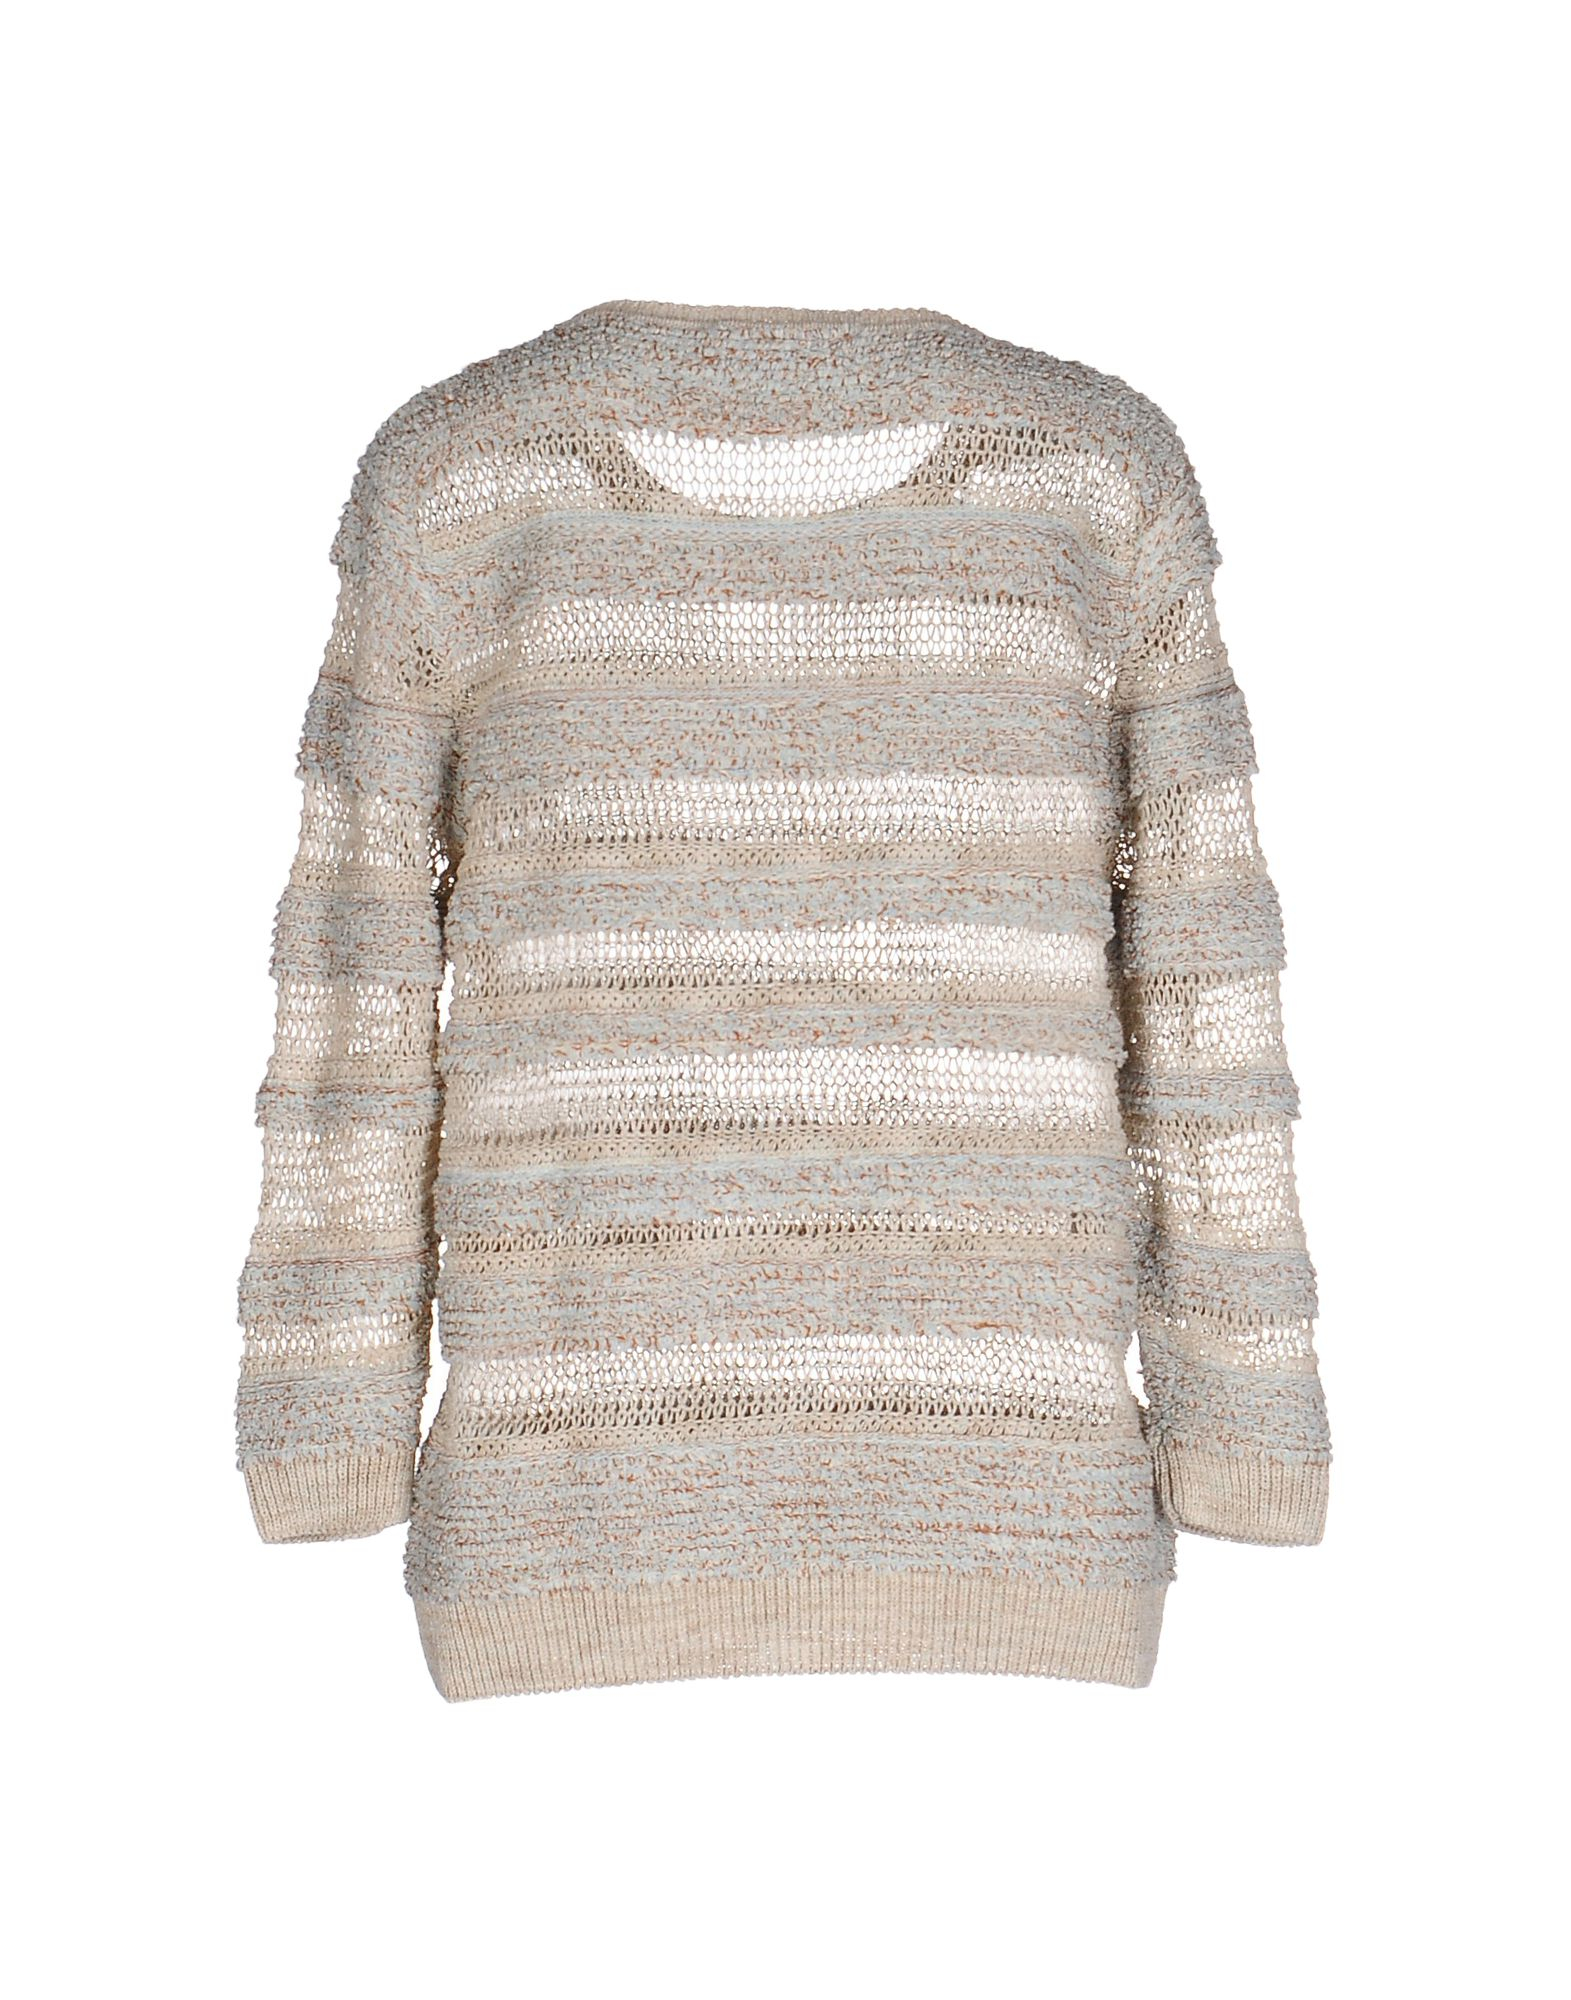 Maison scotch sweater in natural lyst for Atelier maison scotch